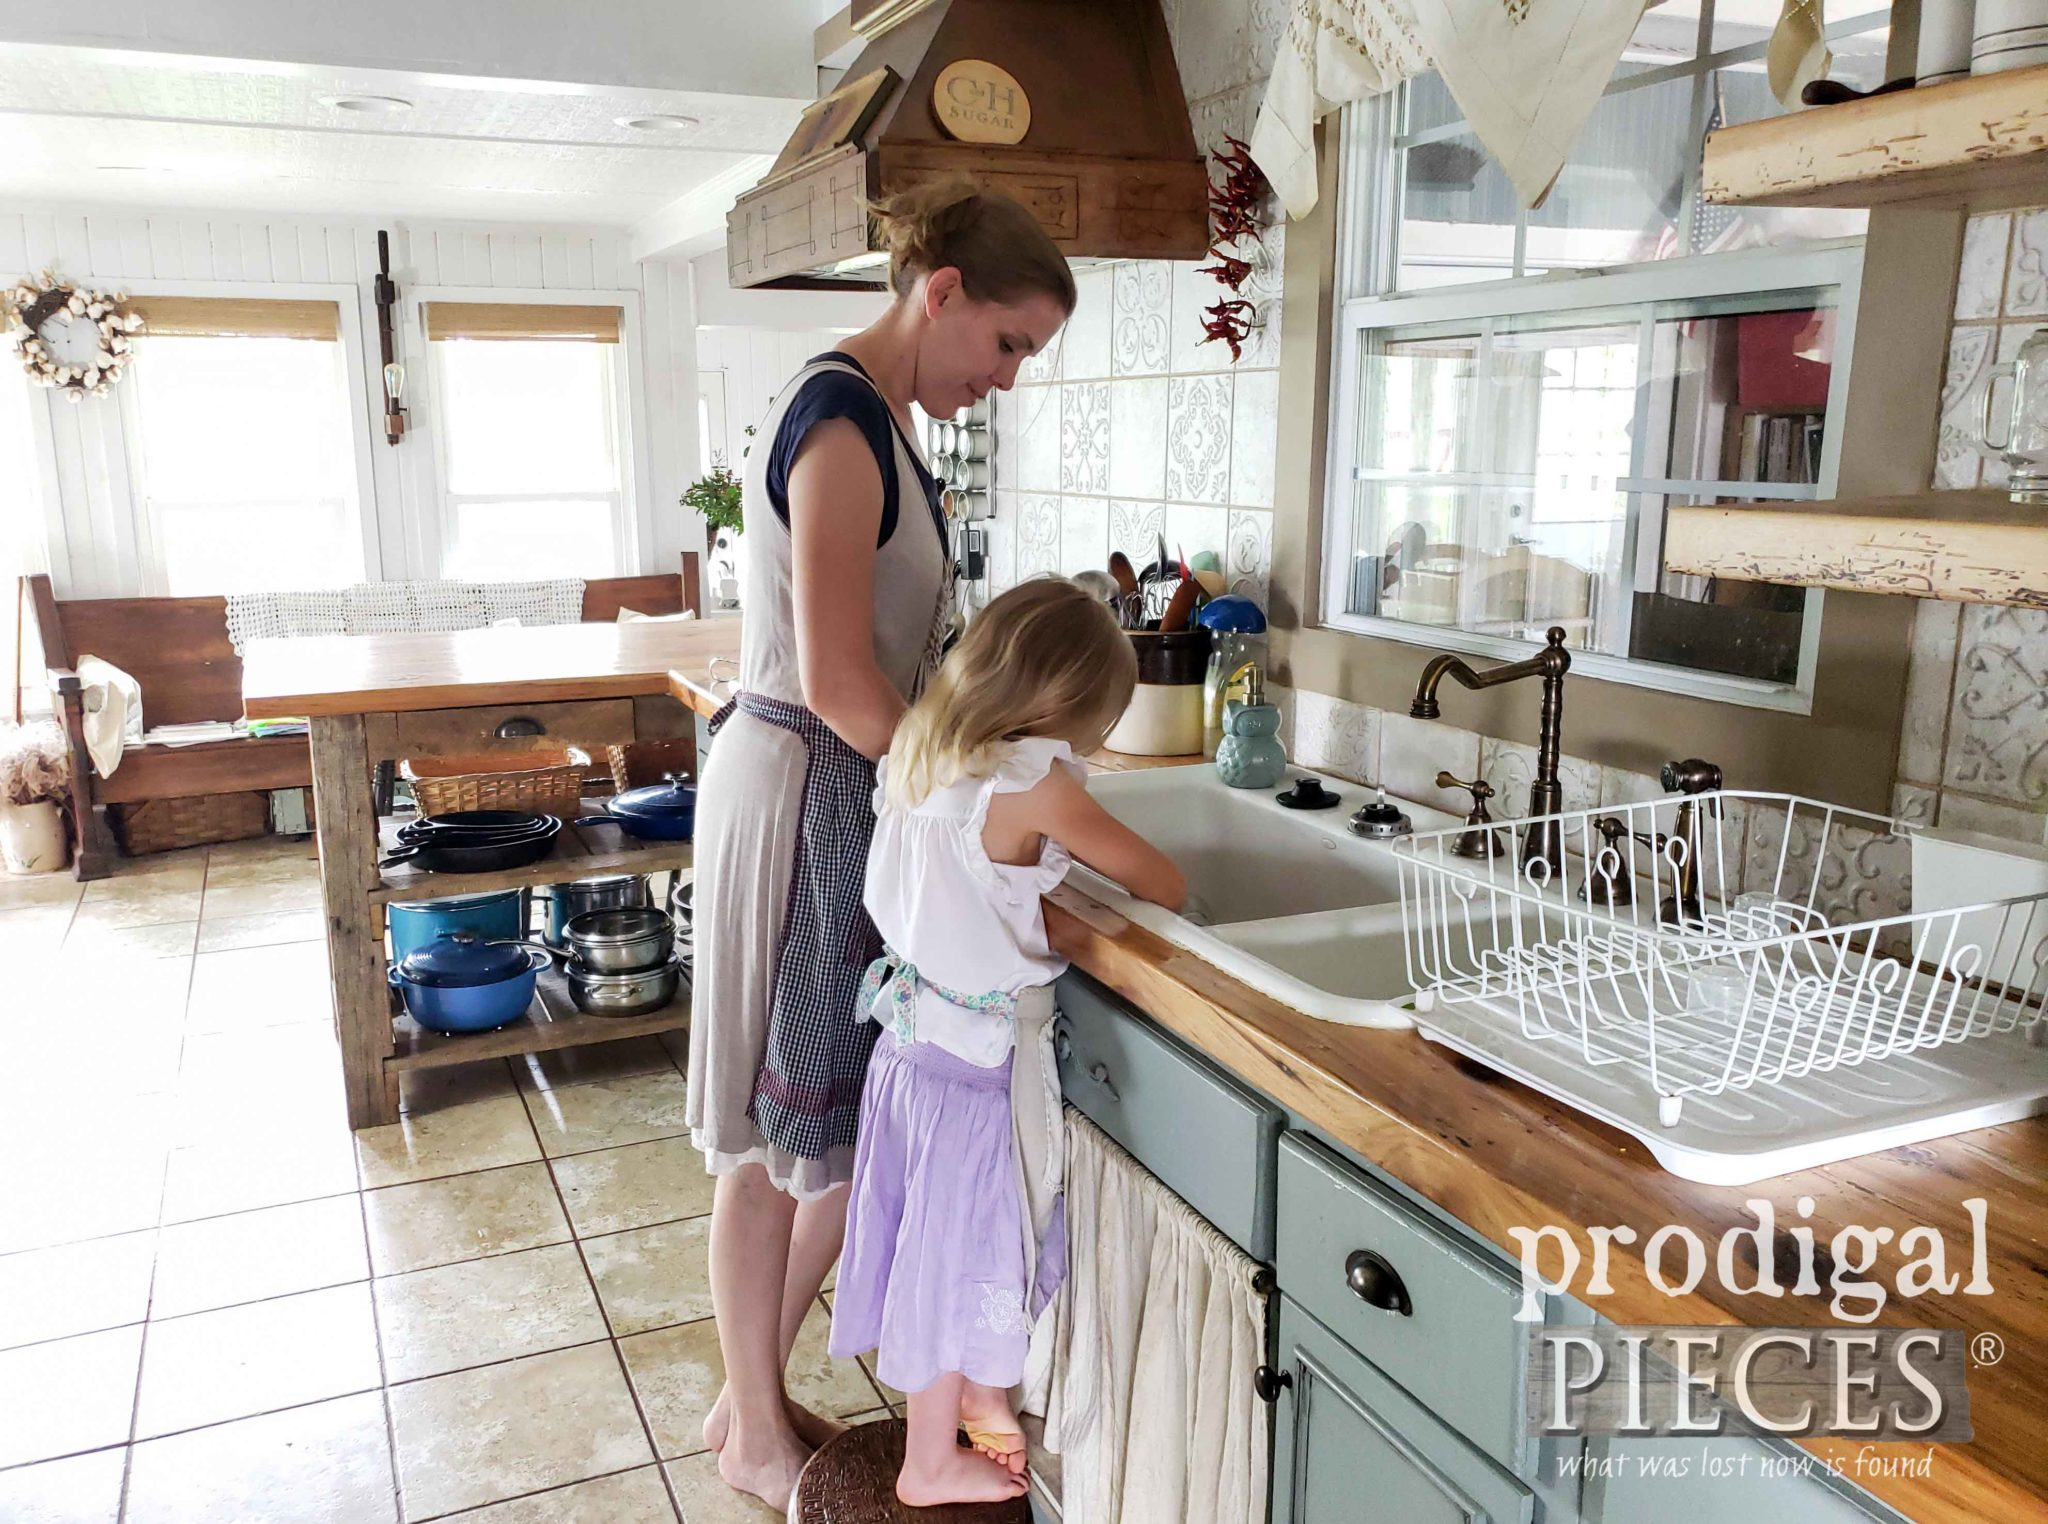 Larissa of Prodigal Pieces with daughter in Farmhouse Style Kitchen | prodigalpieces.com #prodigalpieces #kitchen #farmhouse #home #homedecor #diy